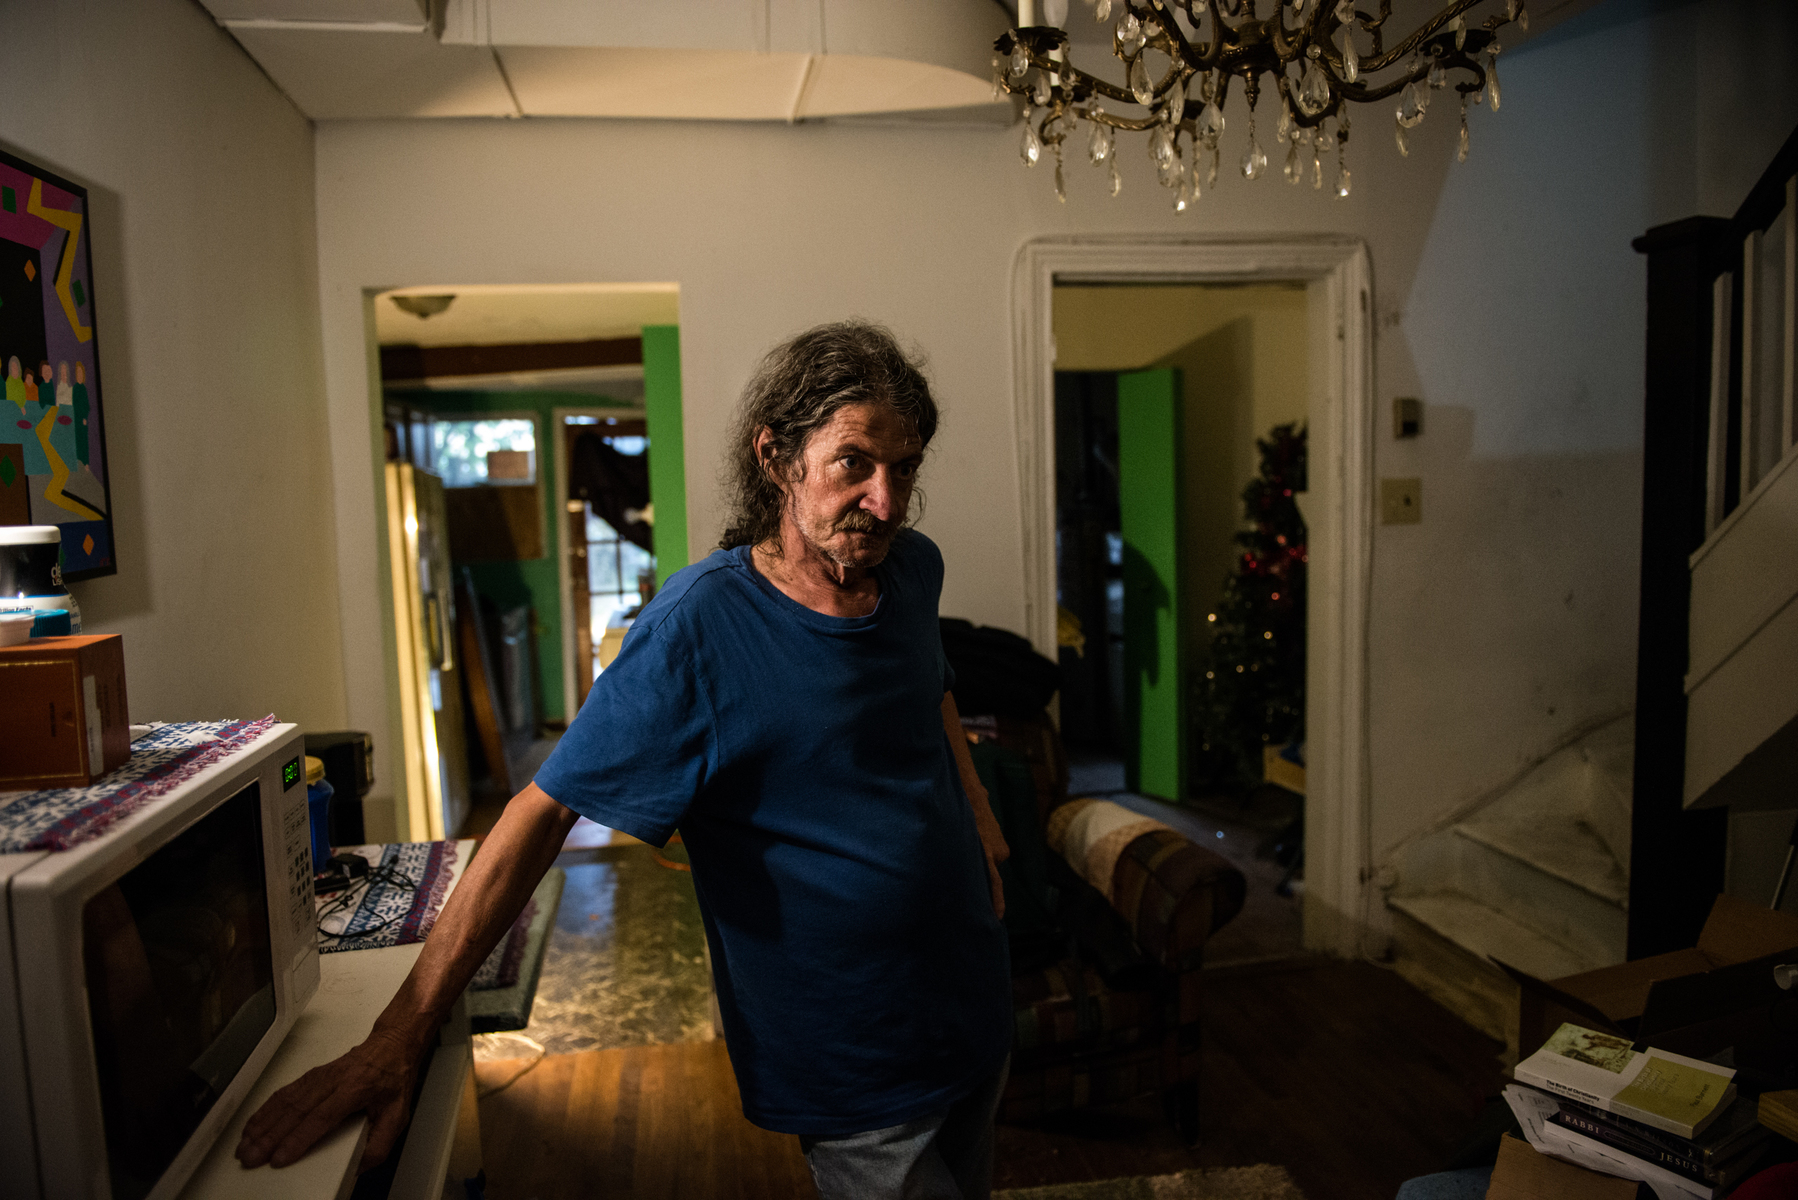 Mike Davis inside his home on US1.  The house is an $850 per month rental in sore need of being brought up to city code.